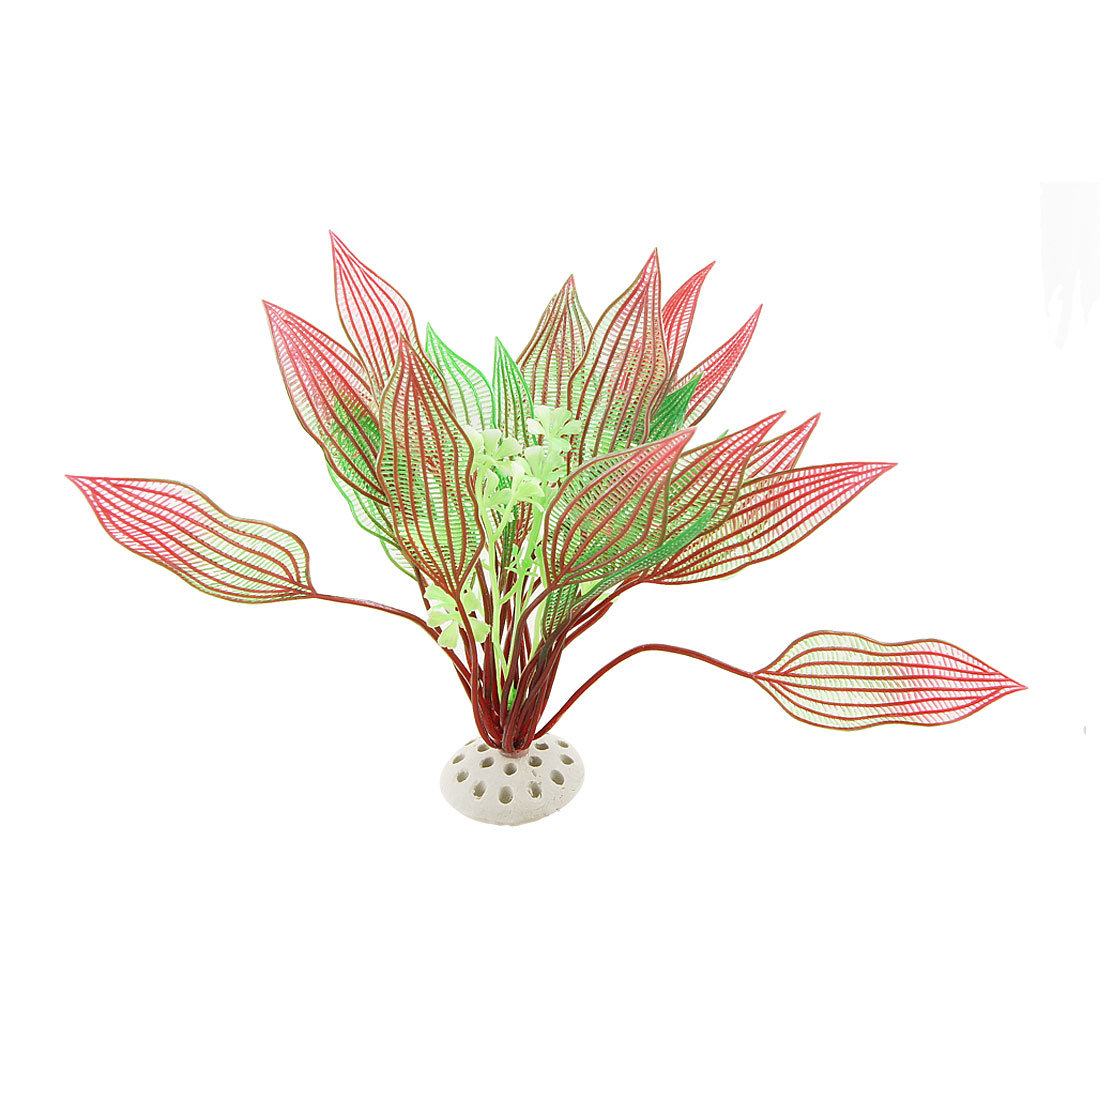 Fish Tank Hollow Out Leaves Plastic Plant Decor Aquascaping Green Red